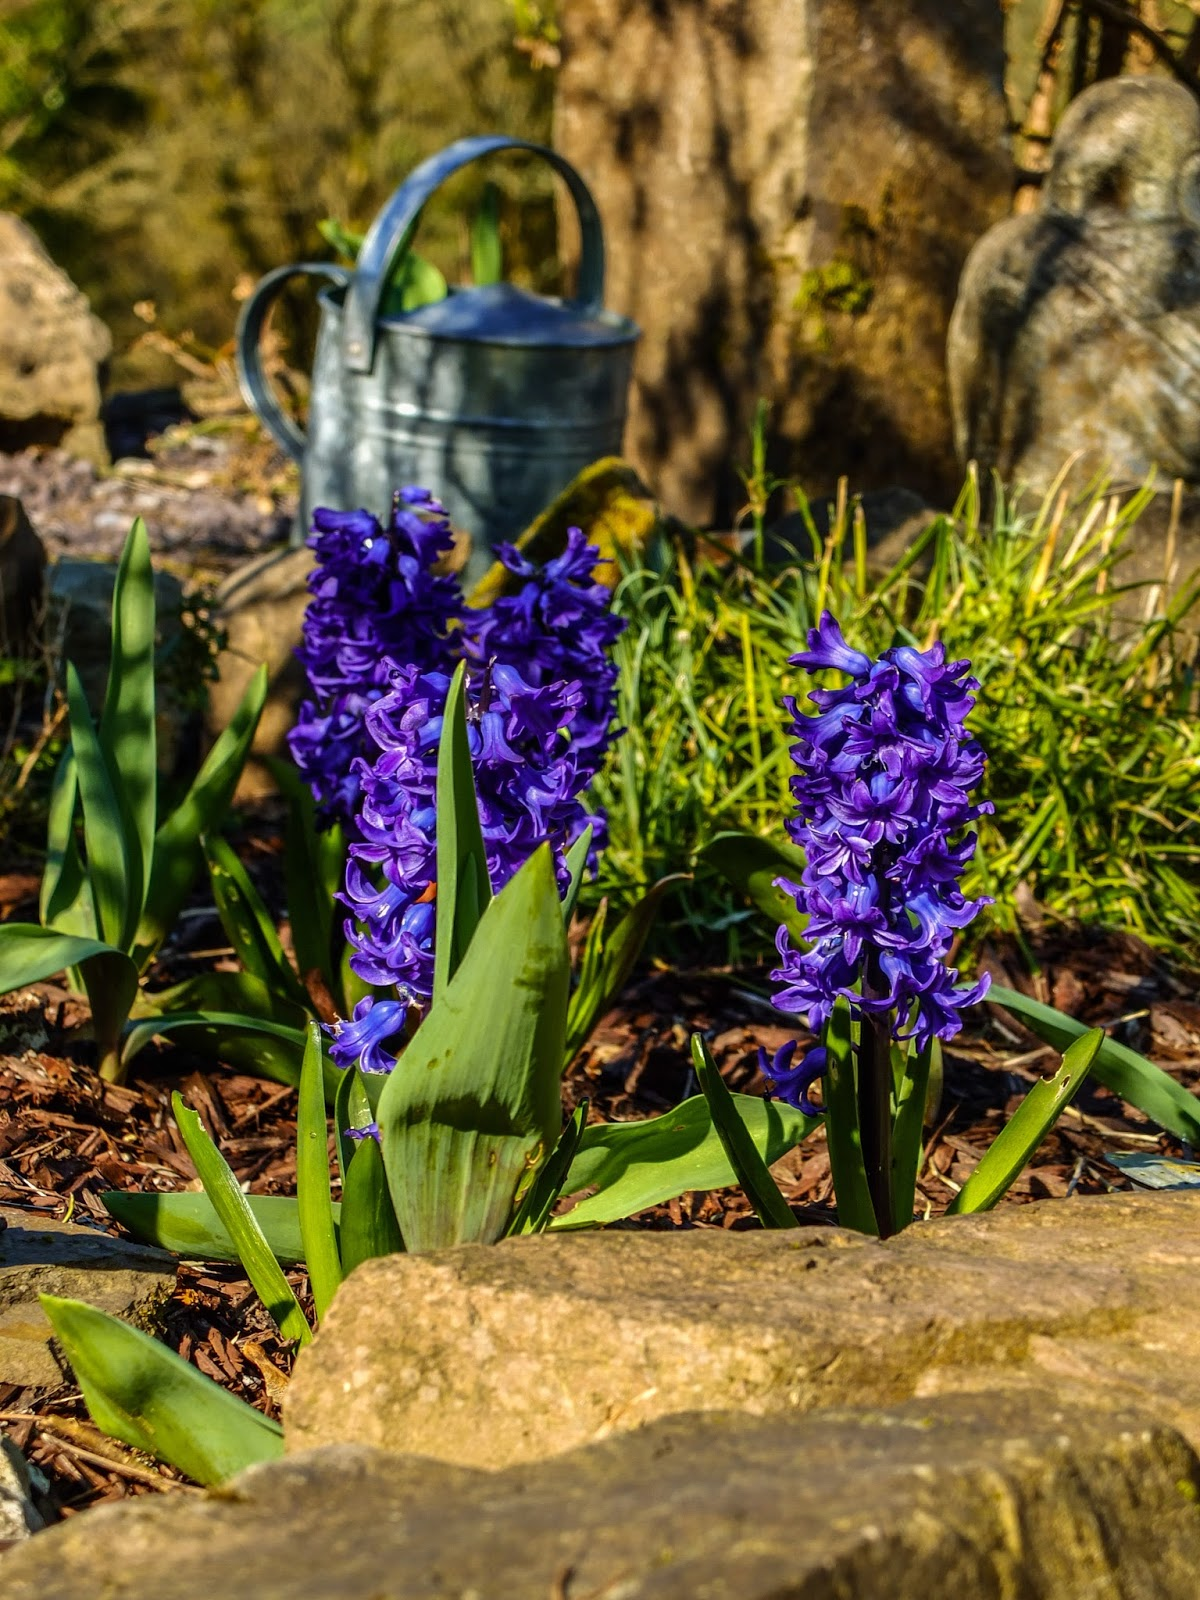 Purple Hyacinths pictured in the morning sunlight in a rockery.